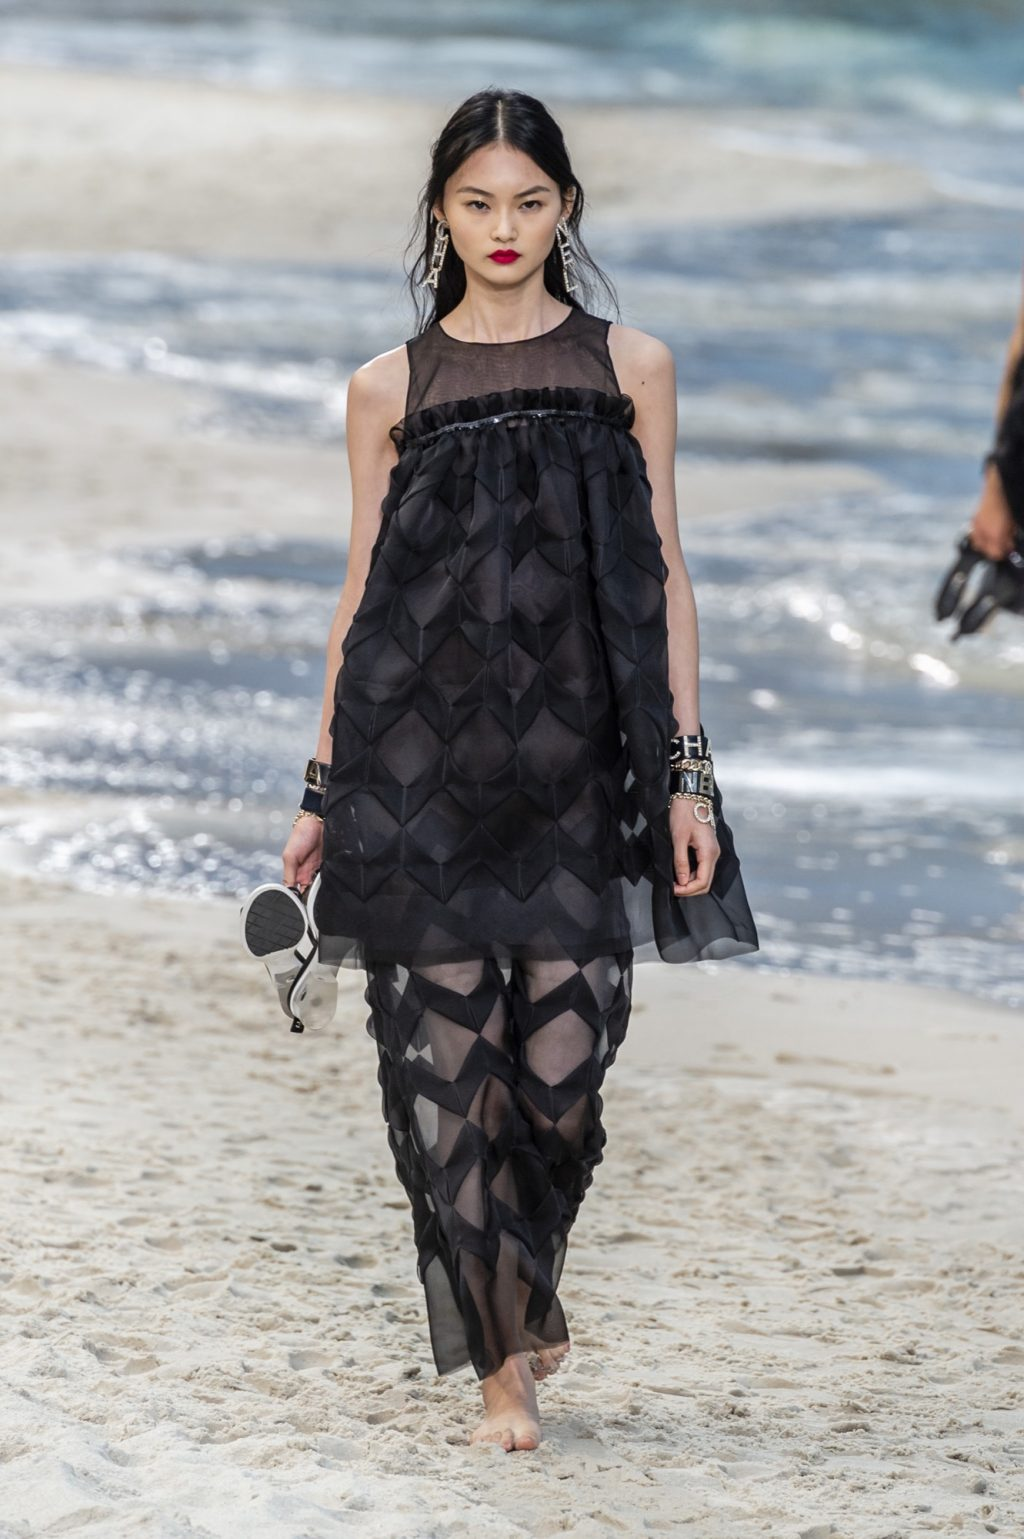 Chanel Takes a Leisurely Stroll on the Beach for Spring/Summer 2019